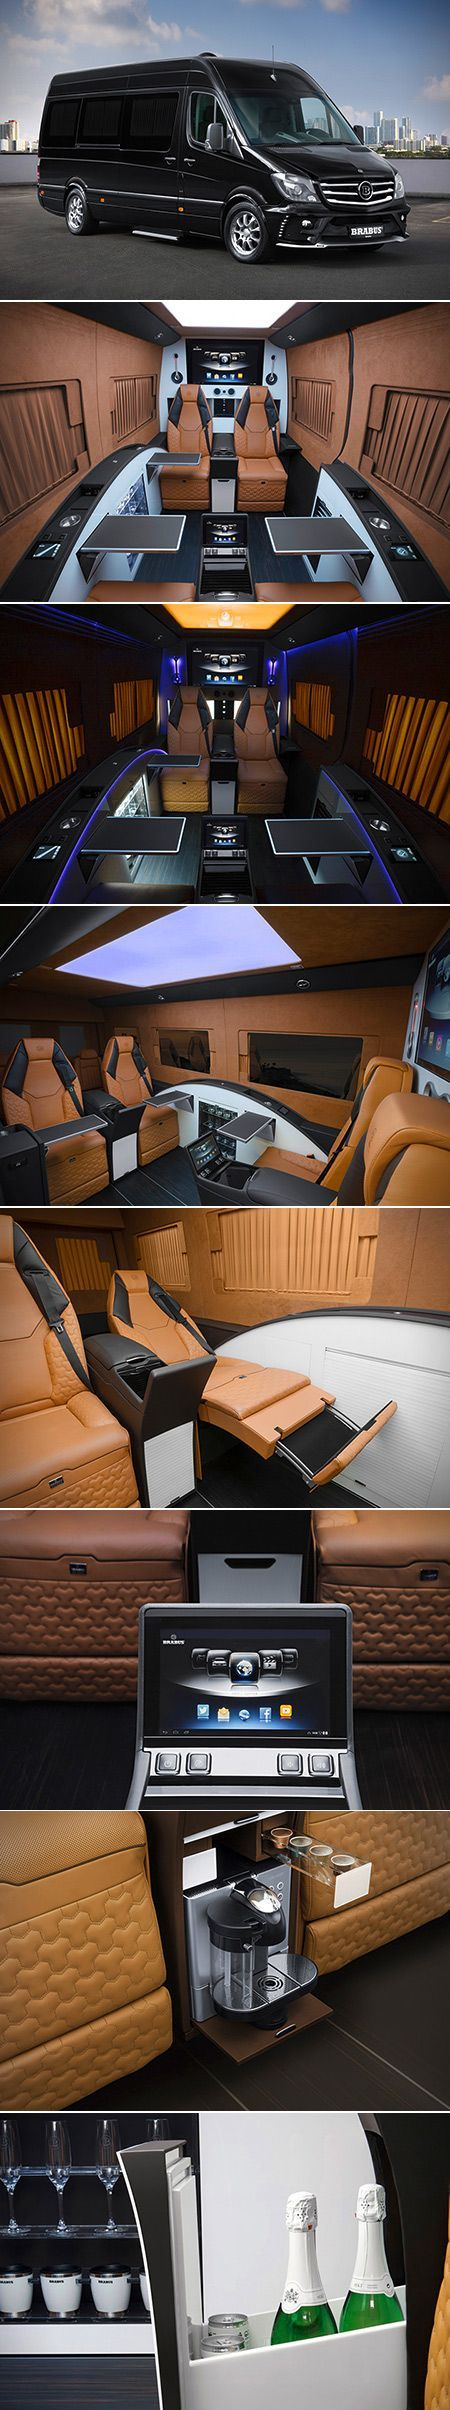 "The Mercedes-Benz Sprinter van was already considered a land mini-yacht by many, but Brabus really took things to the next level with their Business Lounge edition of the beloved ""bus."" Unveiled at the Moscow International Automobile Salon, this long wheelbase Sprinter has had both the exterior and interior completely revamped. Sure the new grille and …"